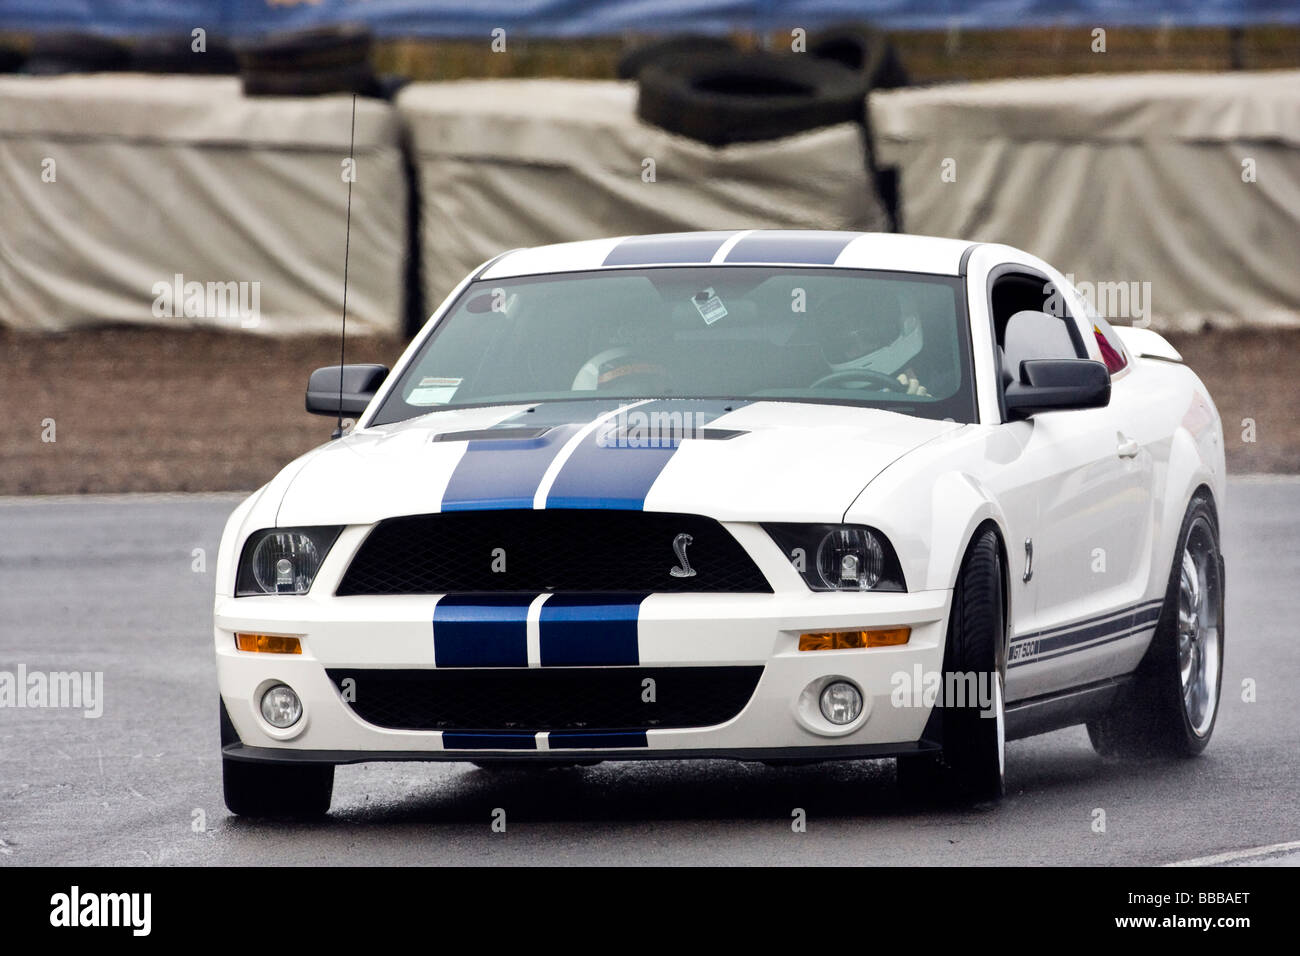 ford mustang shelby gt 500 stock photos ford mustang. Black Bedroom Furniture Sets. Home Design Ideas